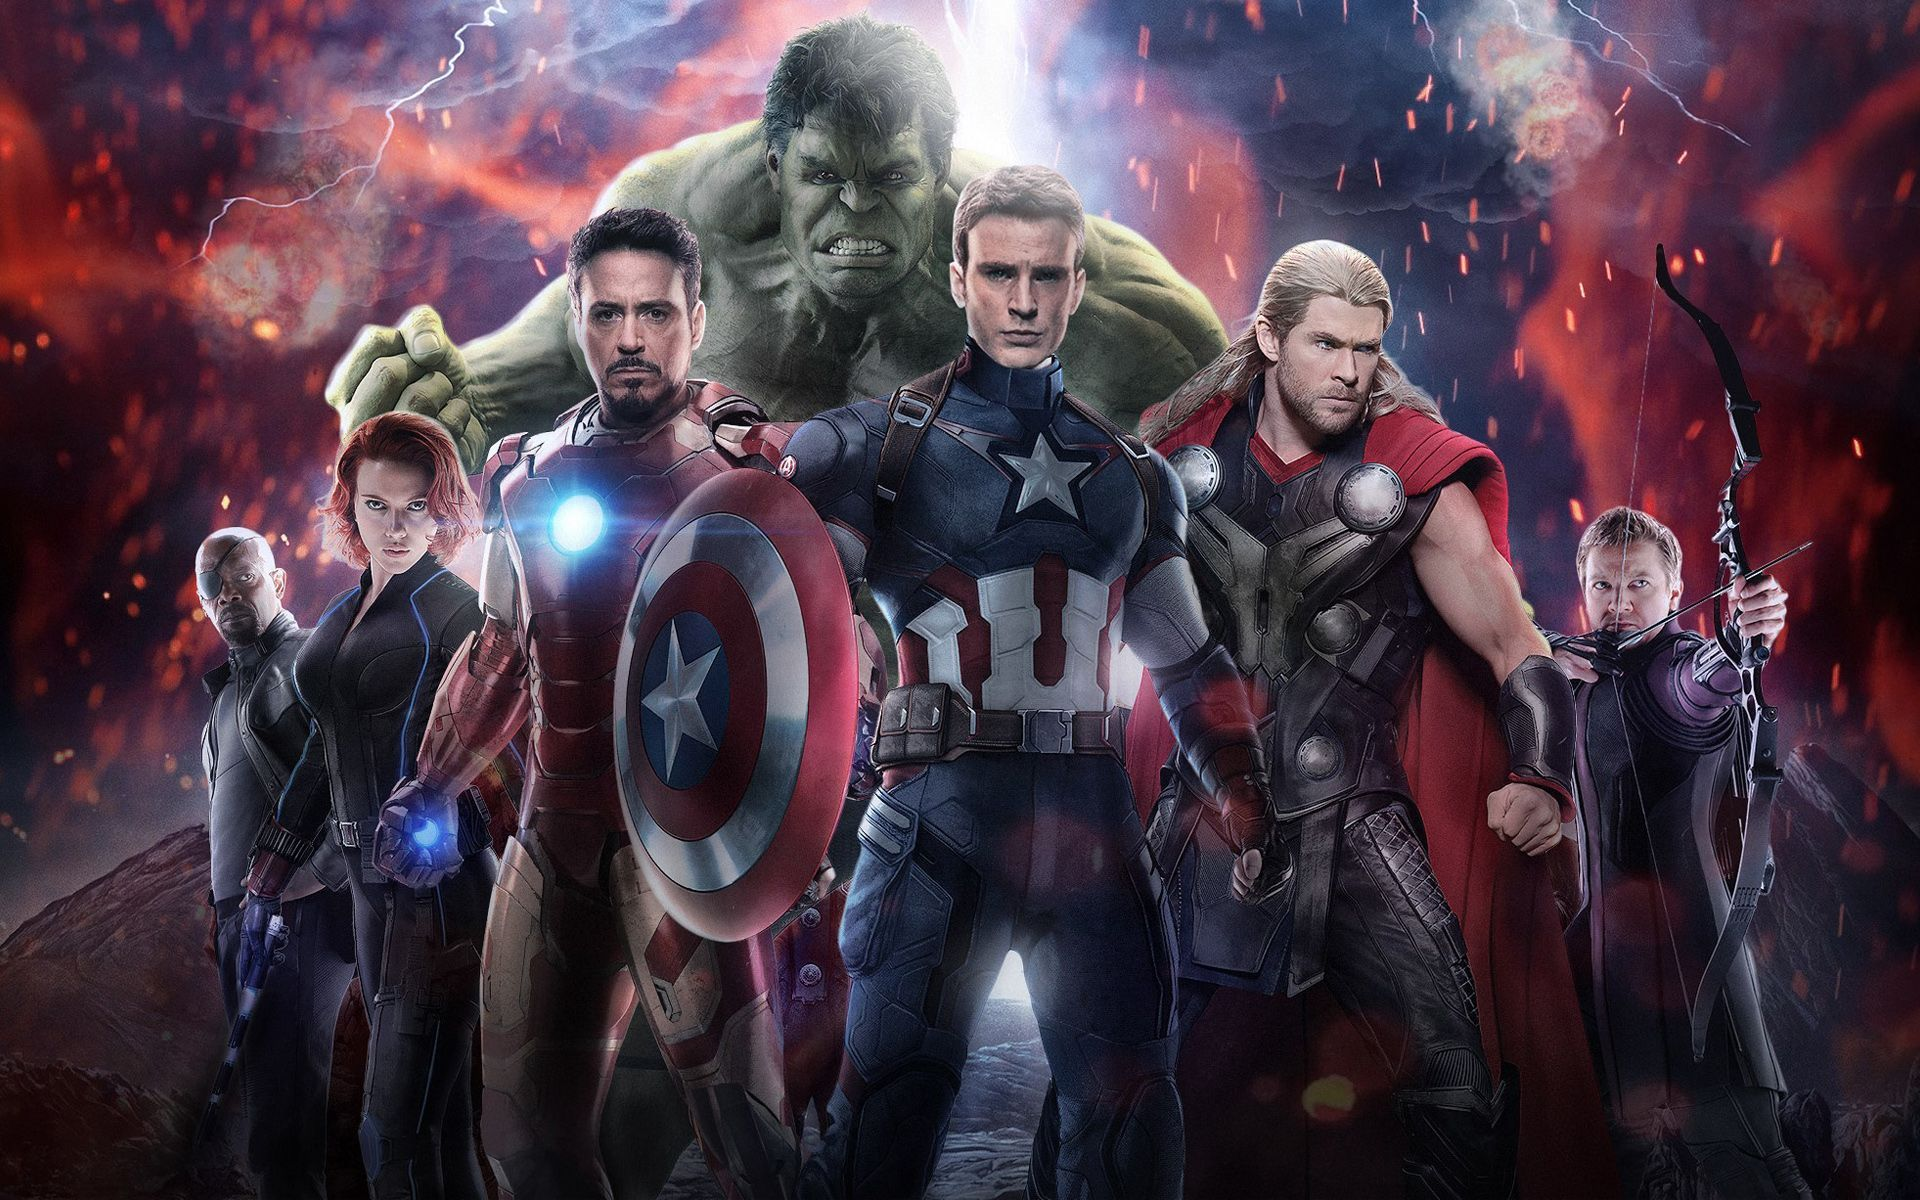 Avengers Hollywood Best Movie Hd Wallpapers All Hd Wallpapers 1920 1200 Download Hd Wallpapers Of Avengers 55 Wallpapers Adorable Wallpapers